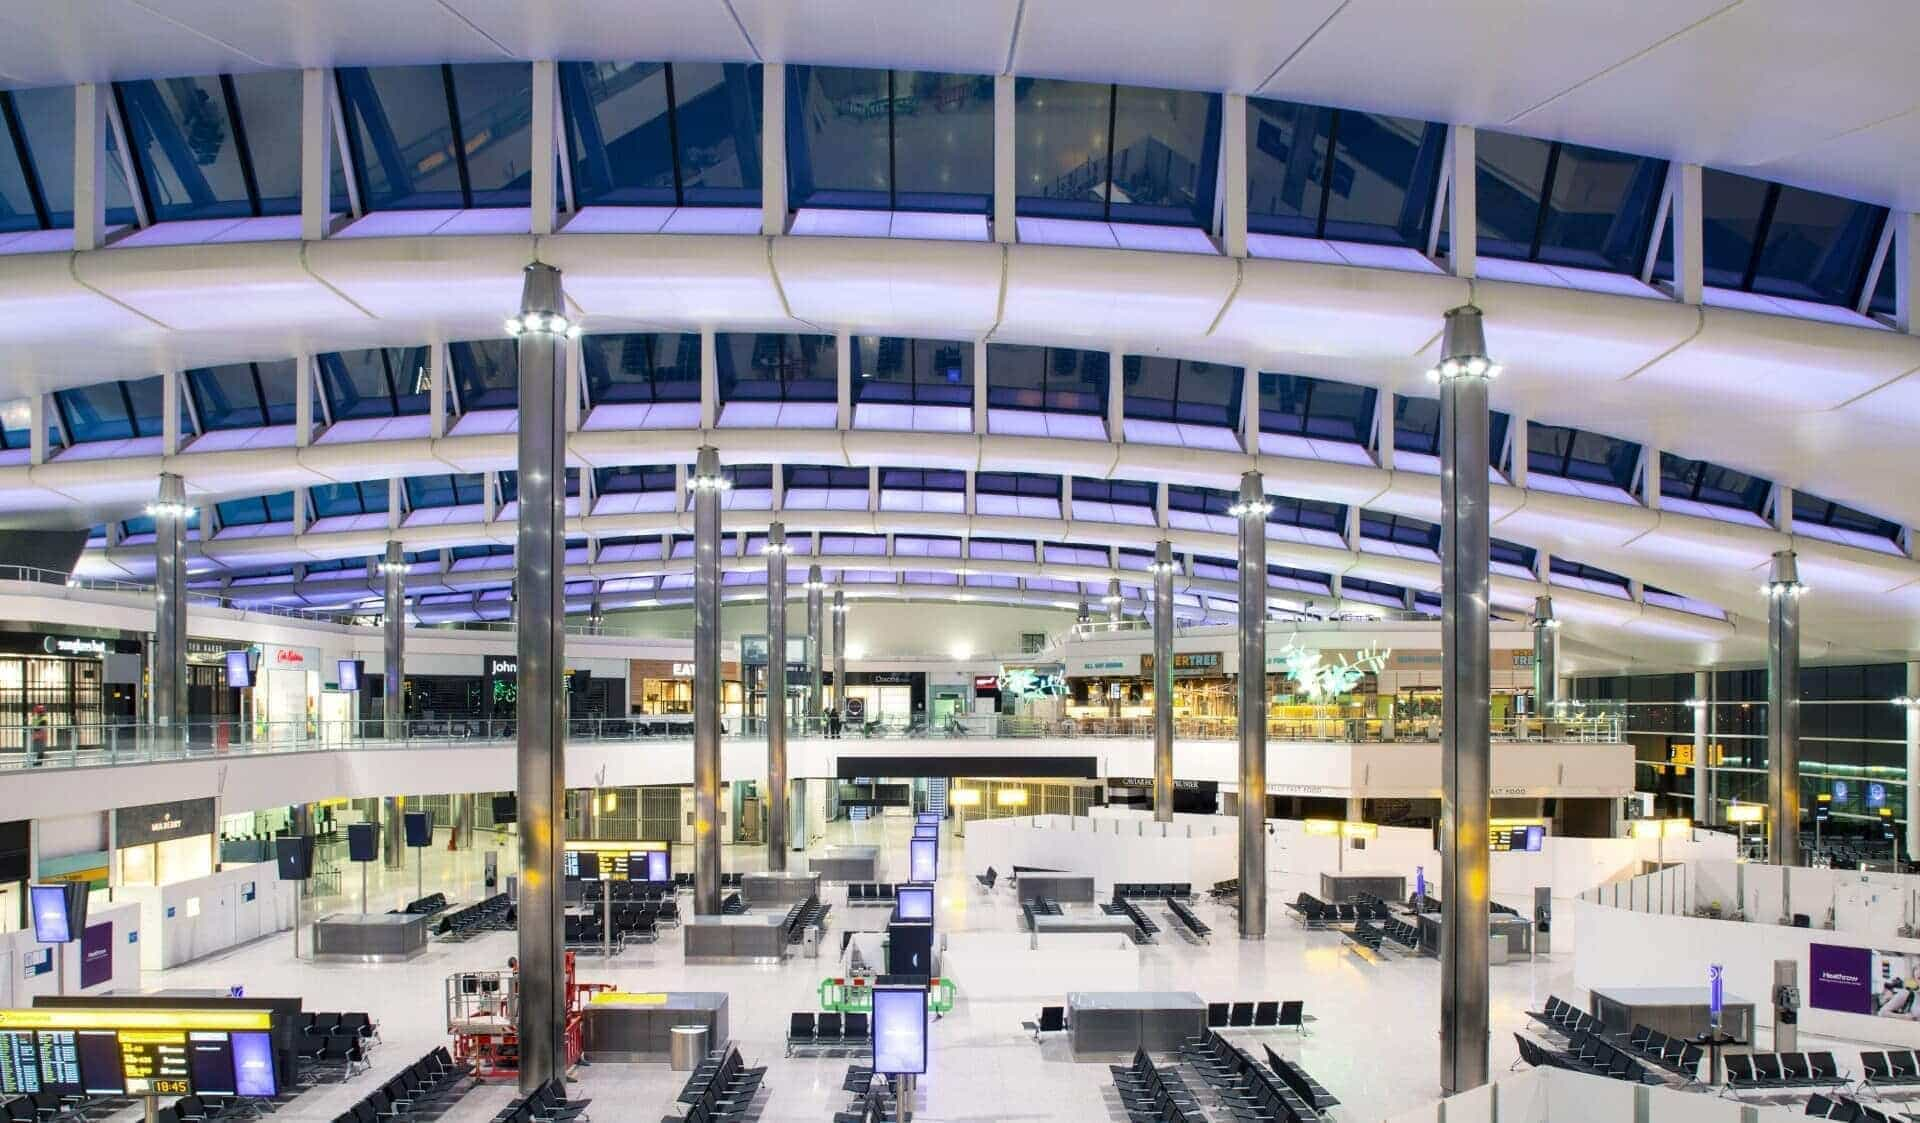 terminal 2 de Heathrow